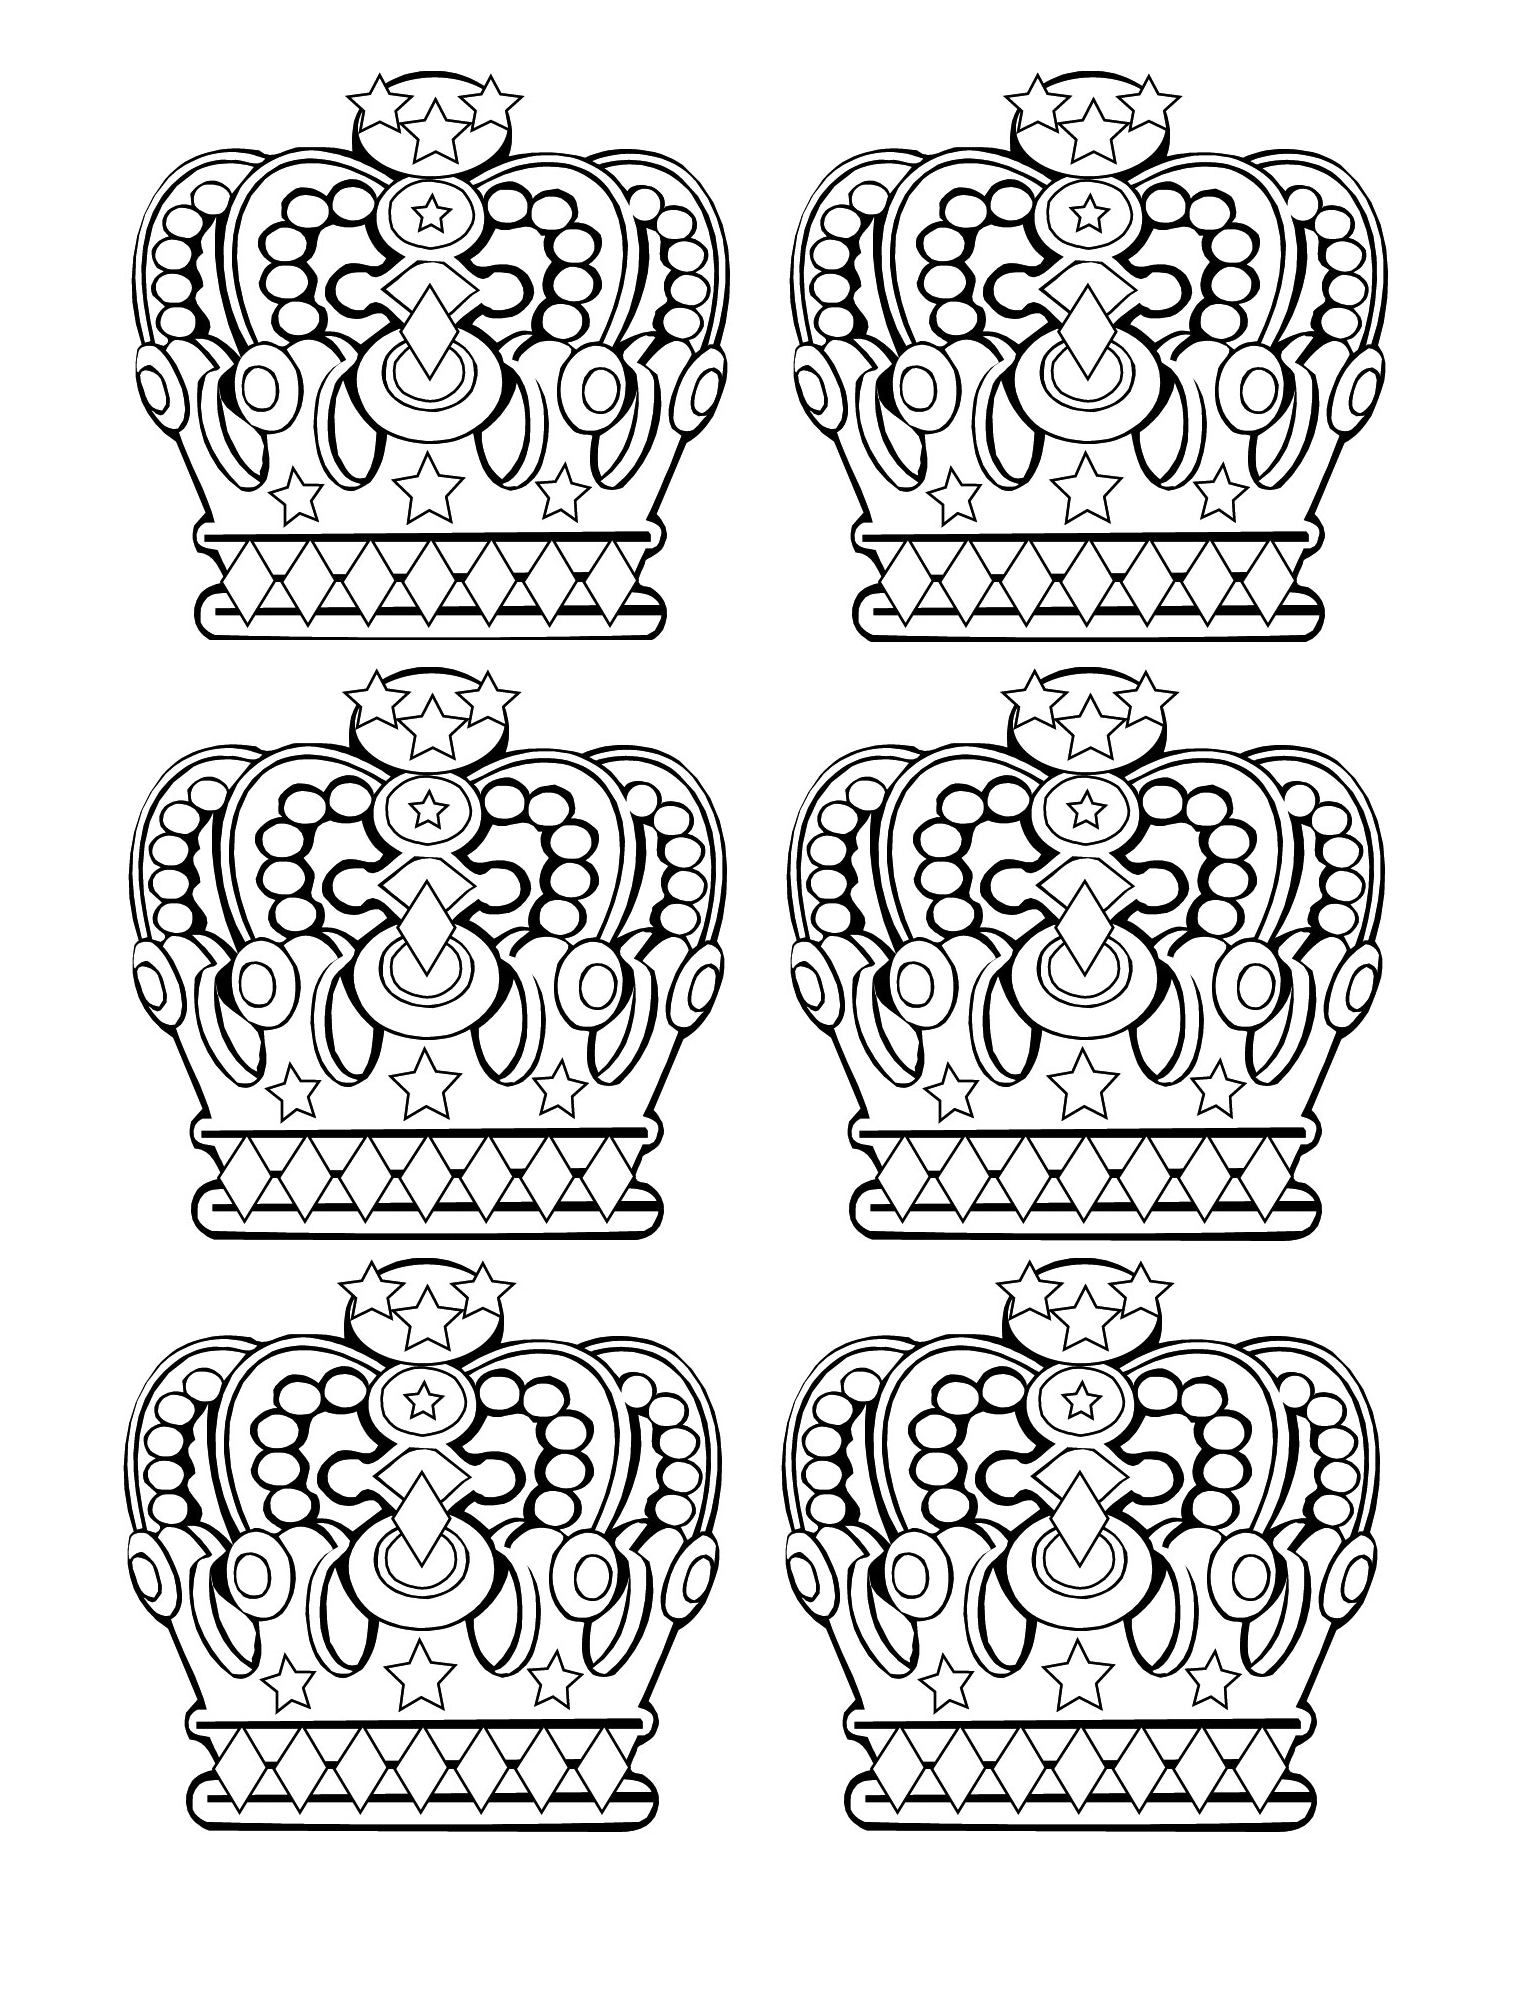 Free Coloring Page 6 Royal Crowns Patterns